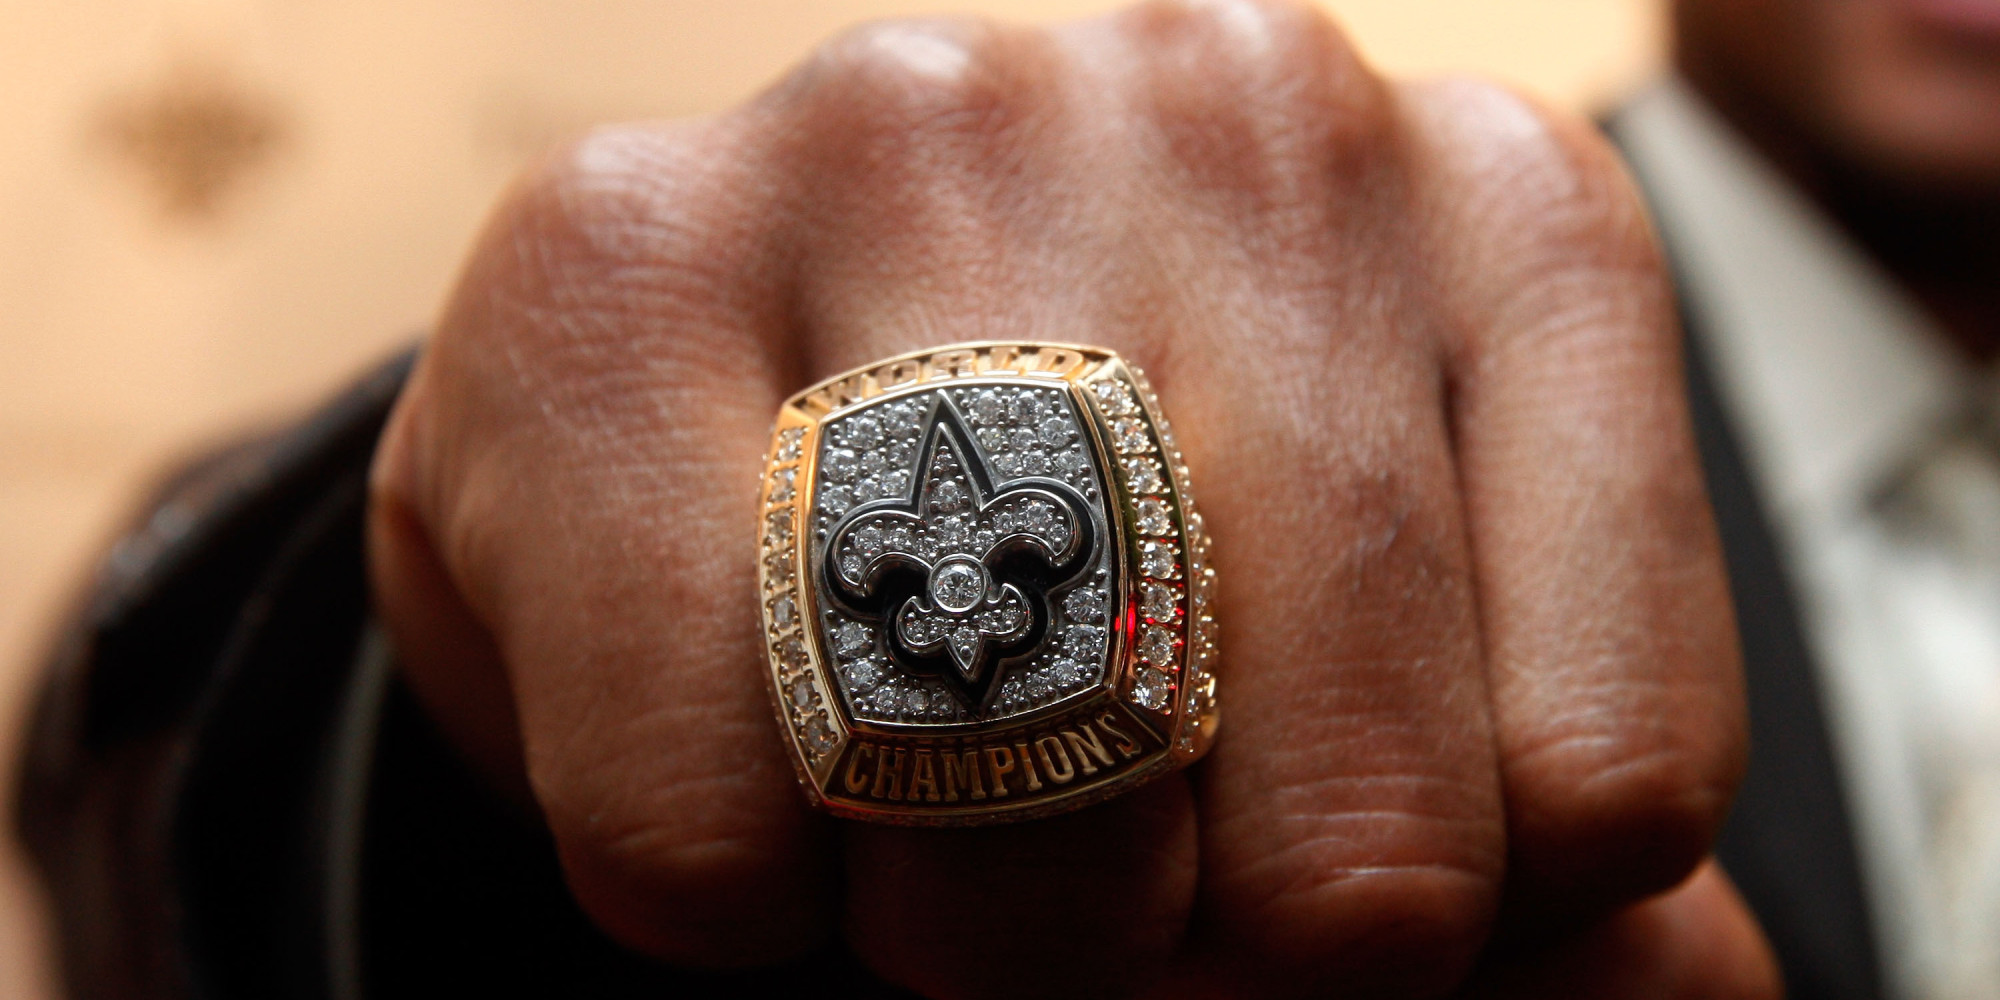 Here's How To Buy A Super Bowl Ring On Craigslist, According To An Expert   Huffpost